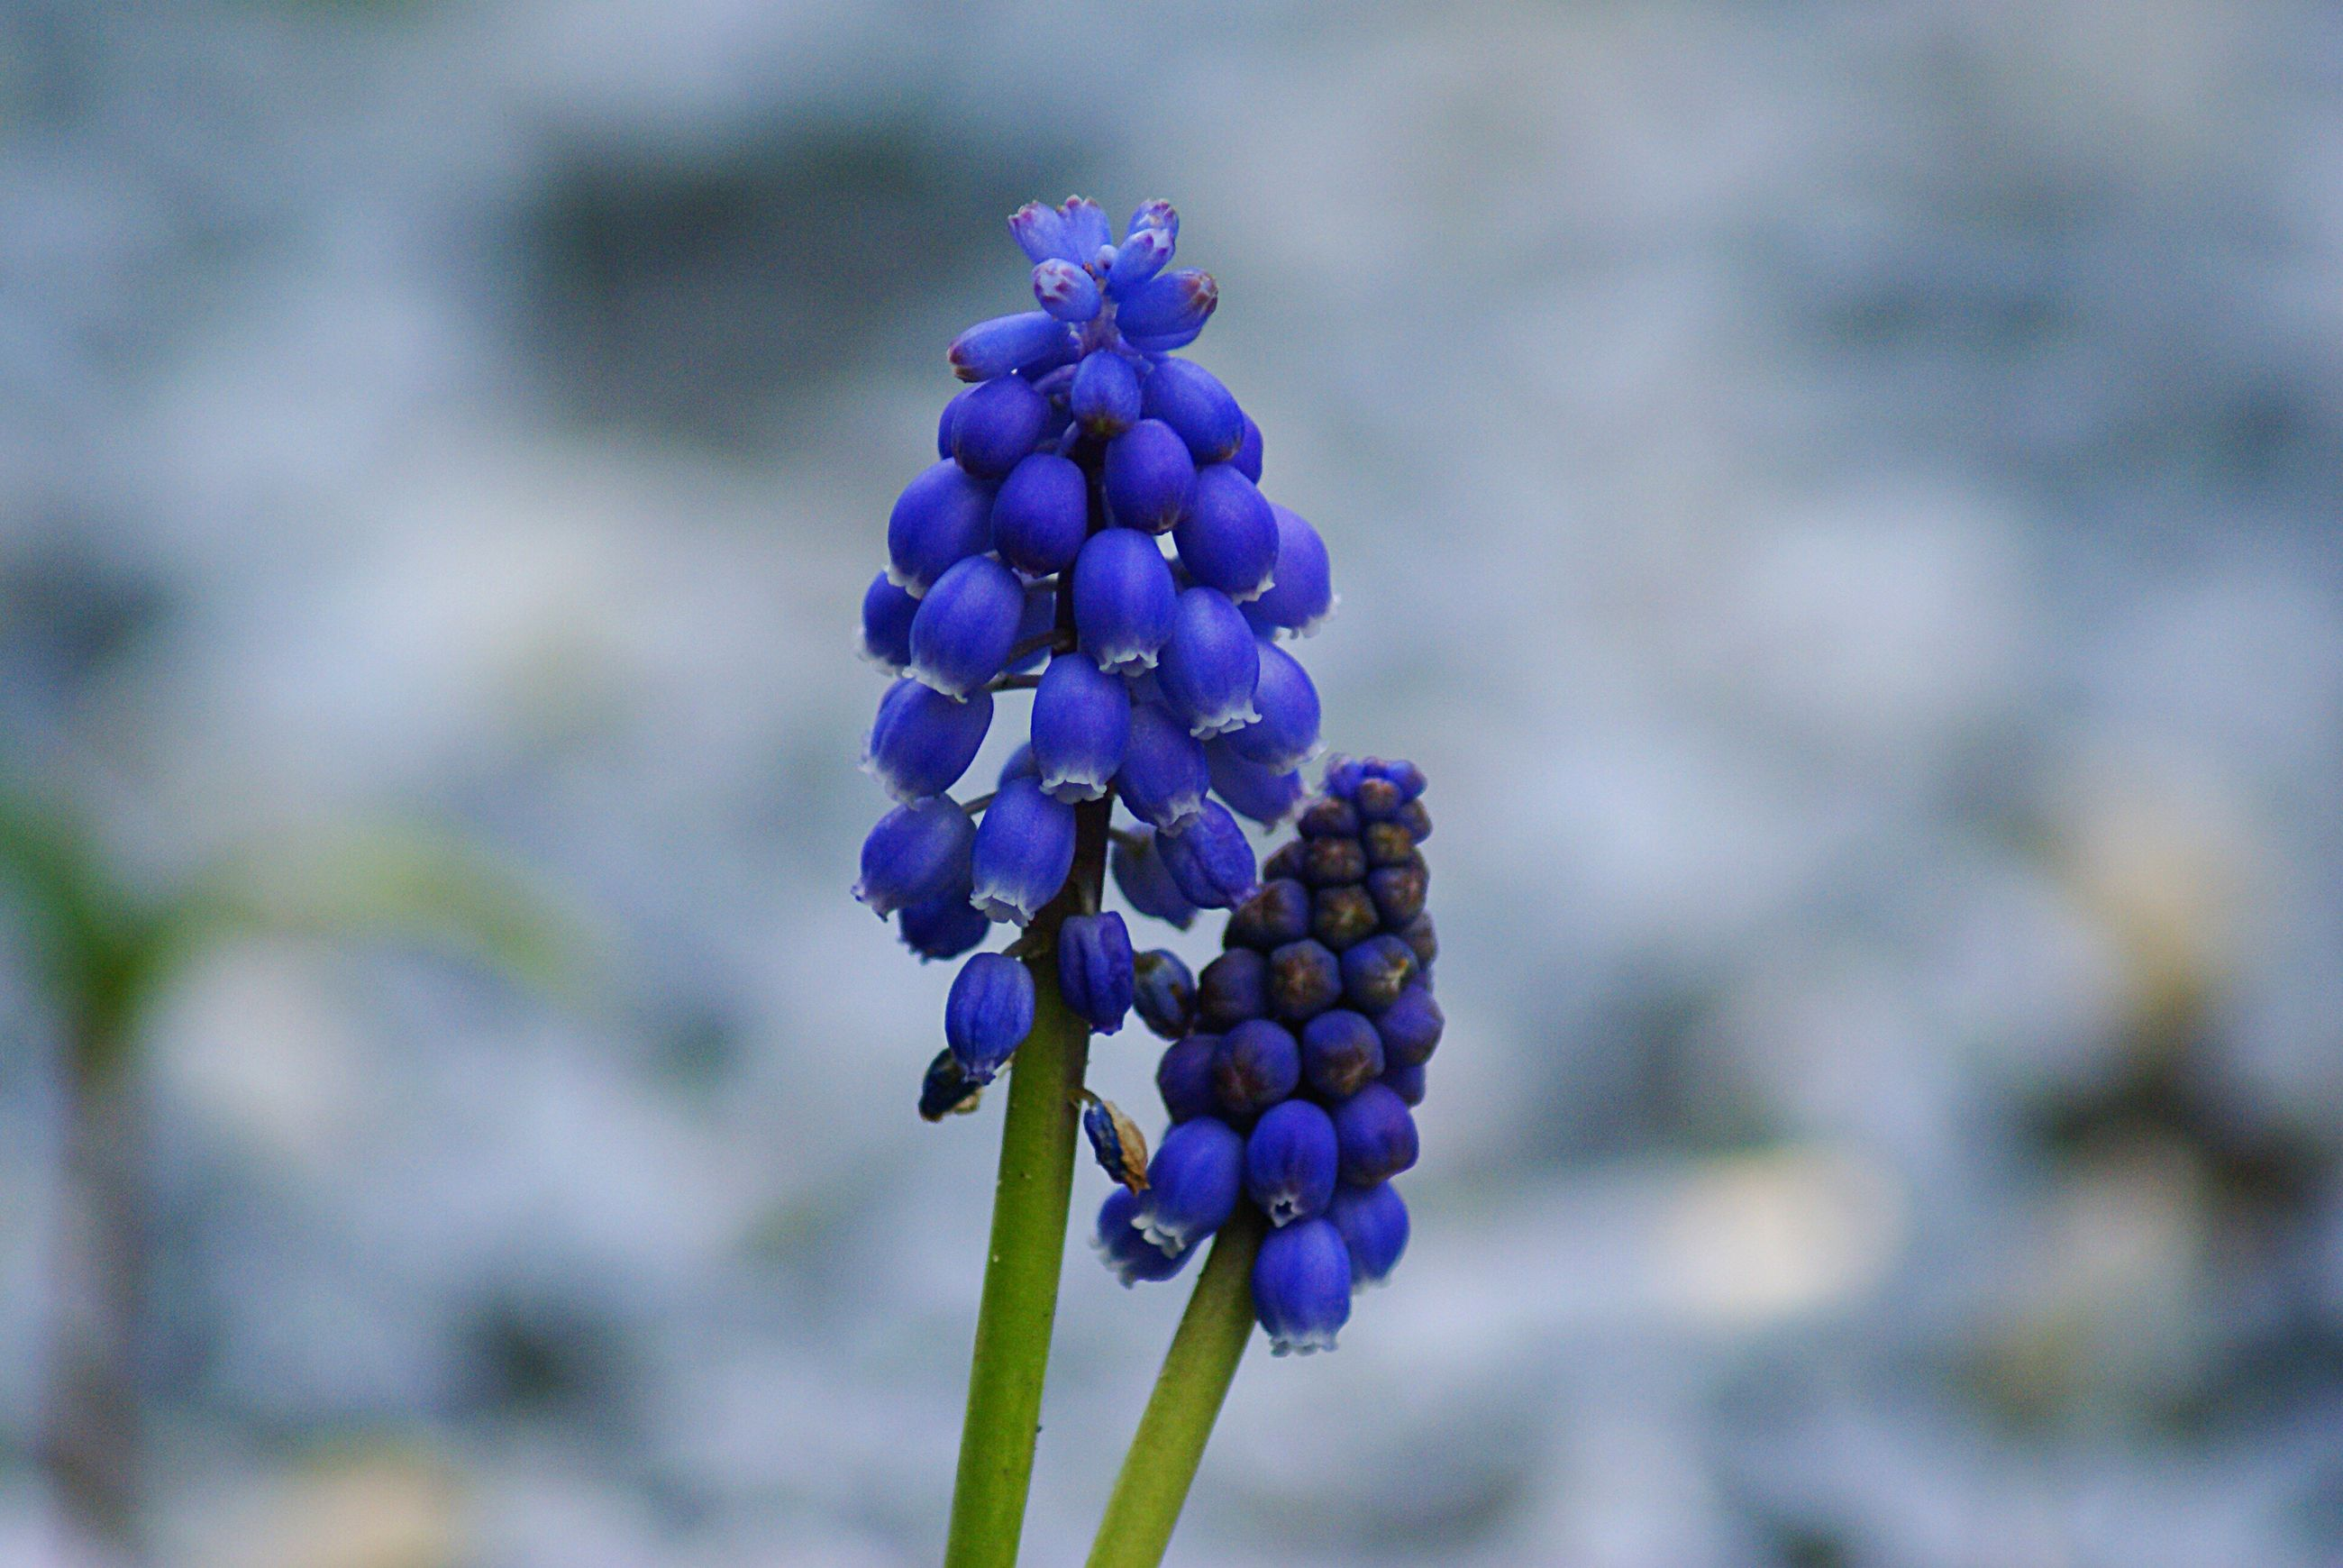 purple, blue, nature, close-up, focus on foreground, freshness, beauty in nature, day, no people, flower, outdoors